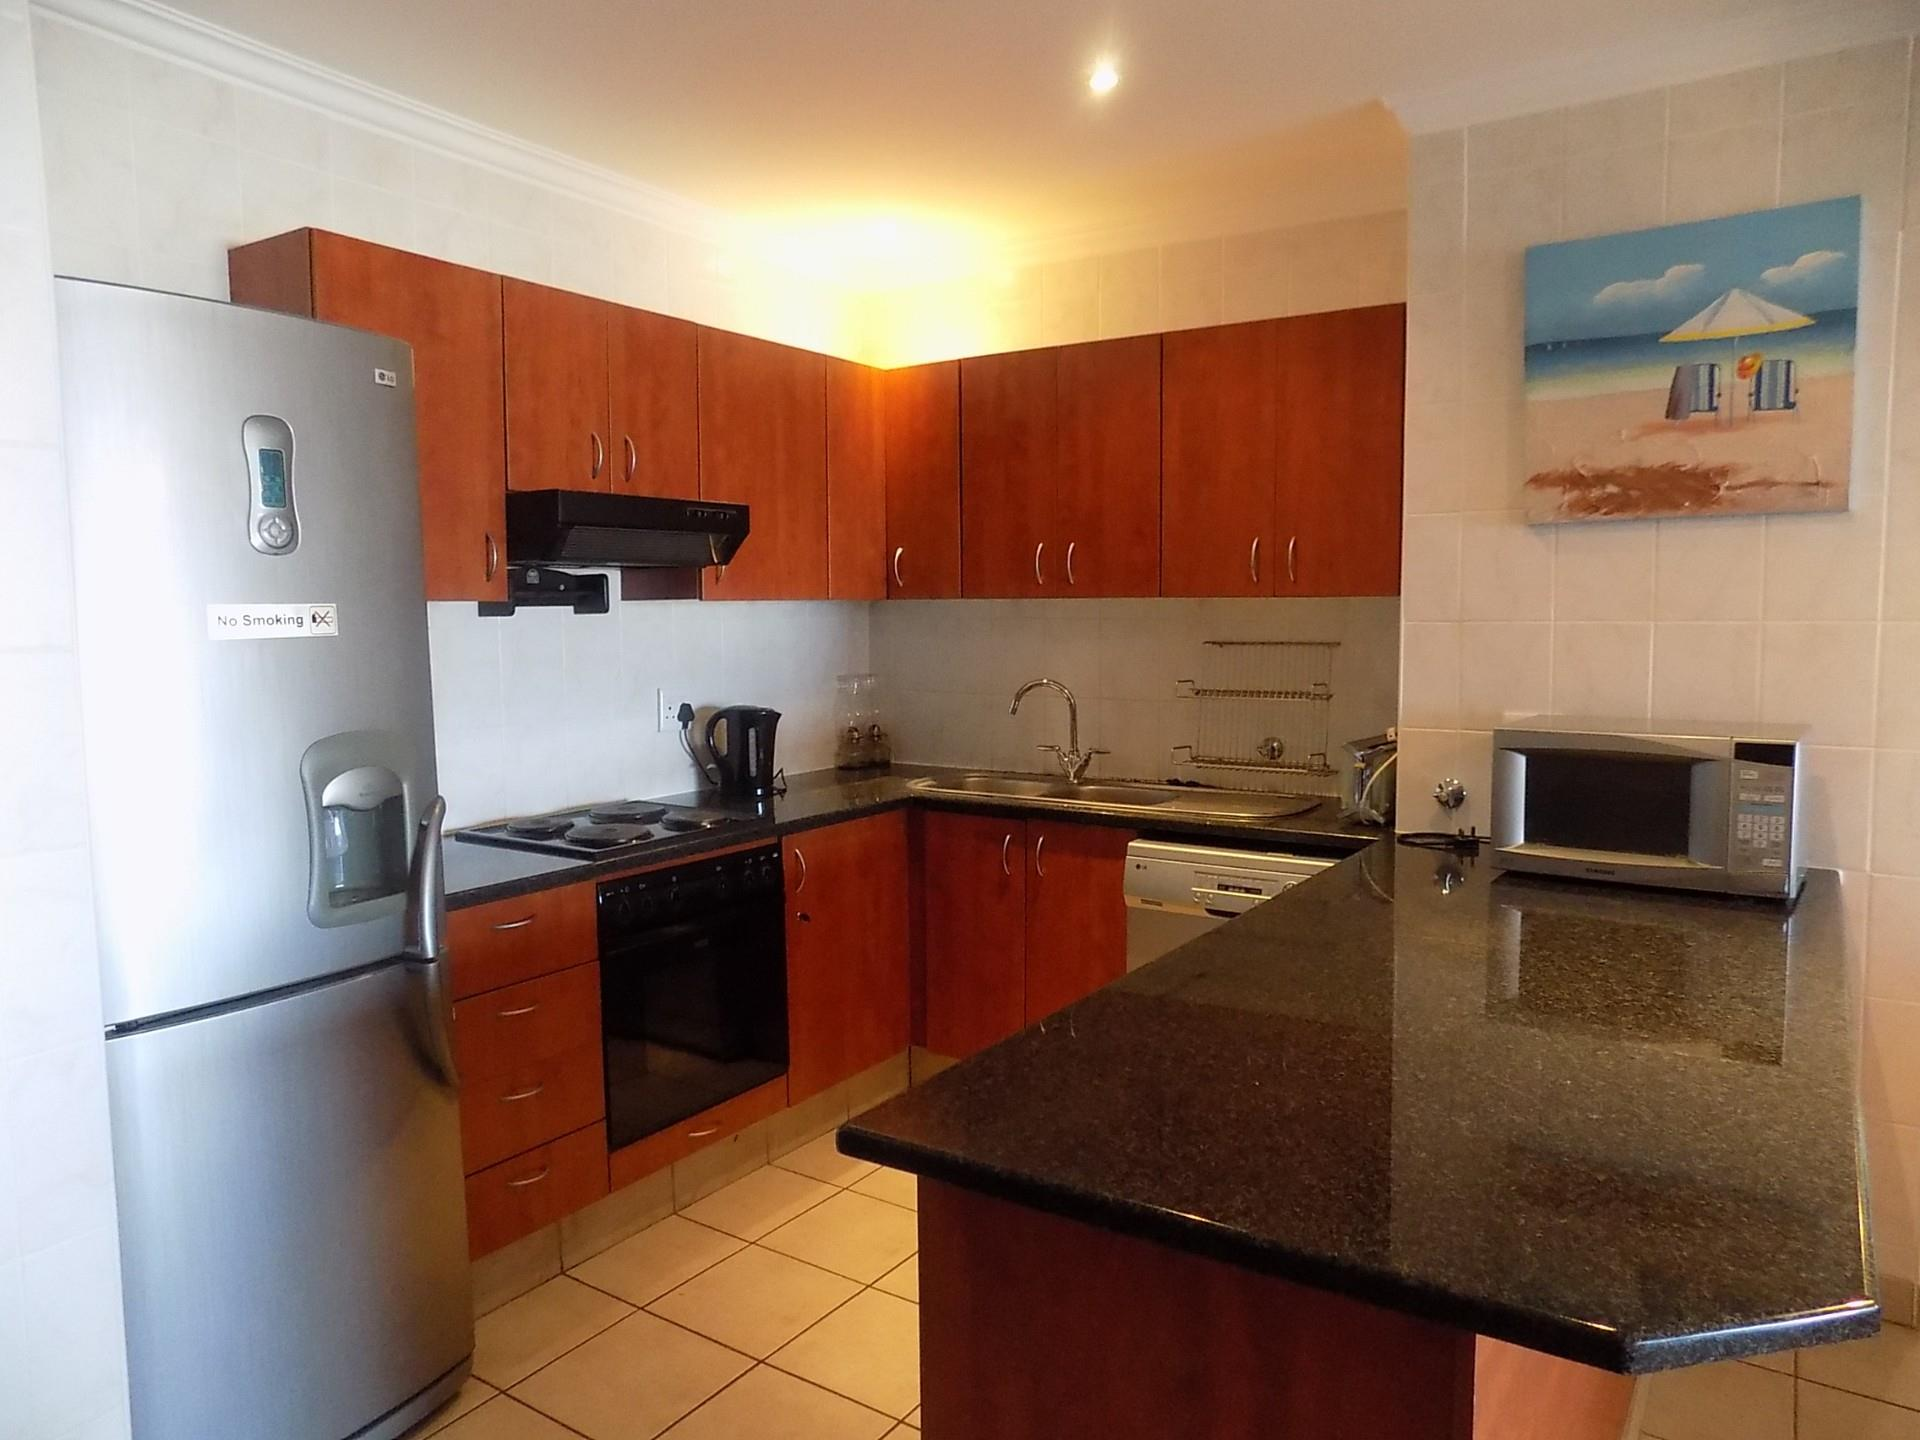 4 Bedroom Apartment / Flat For Sale in Ramsgate